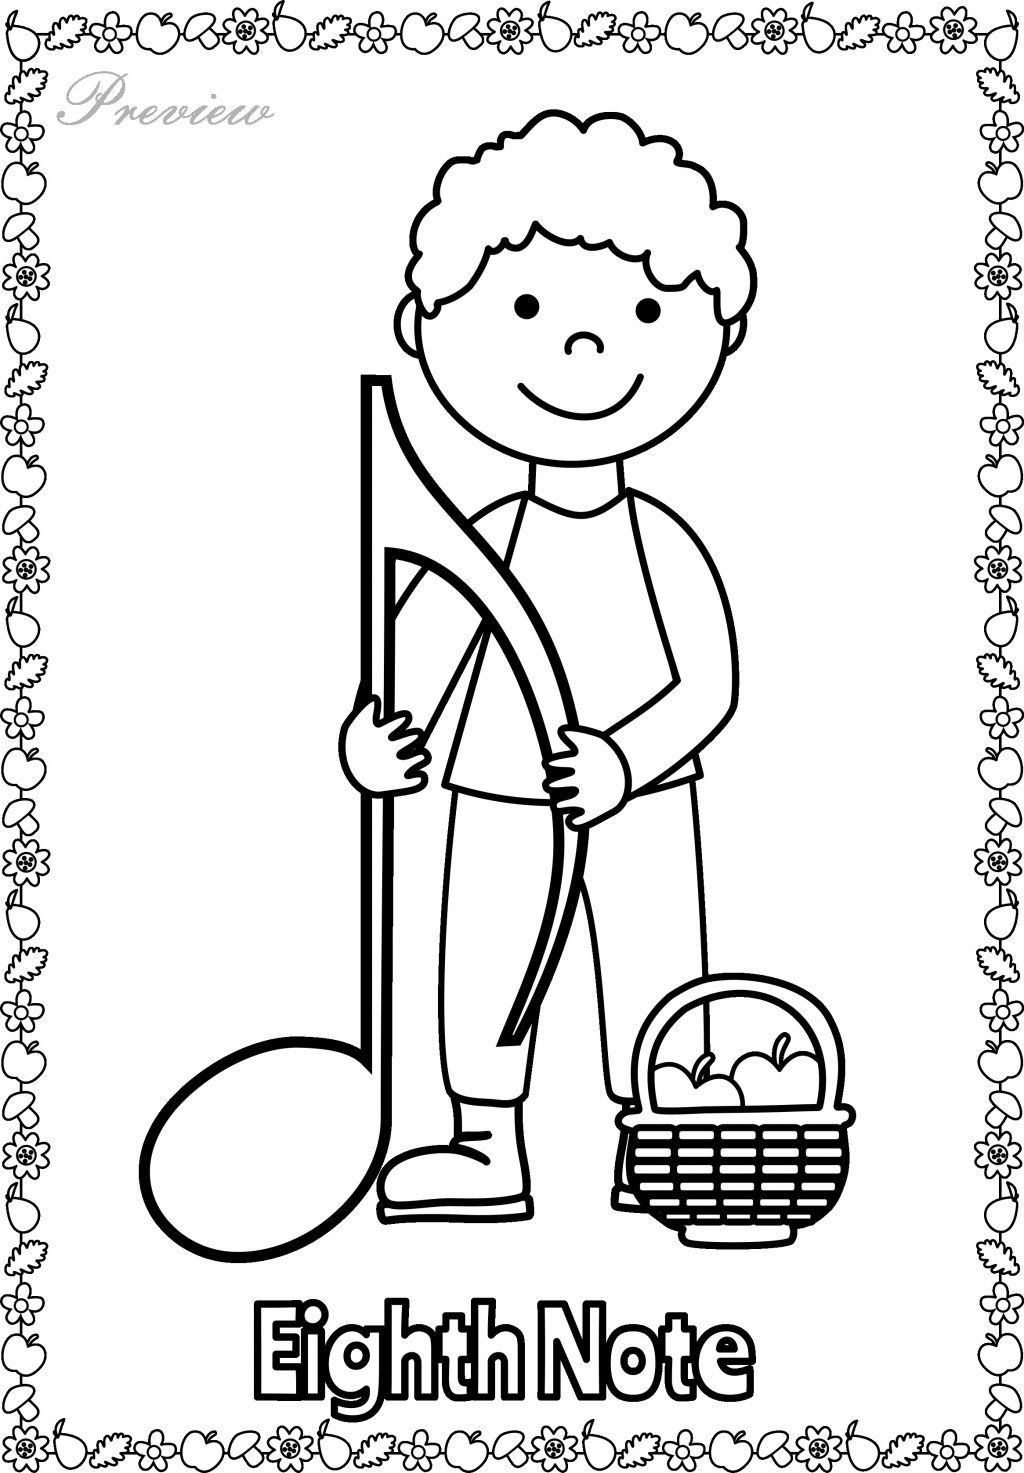 Music Notes Coloring Pages Best Of Coloring Pages And Books Music Note Coloring Pages Tambourine Music Coloring Music Notes Music For Kids [ 1473 x 1024 Pixel ]